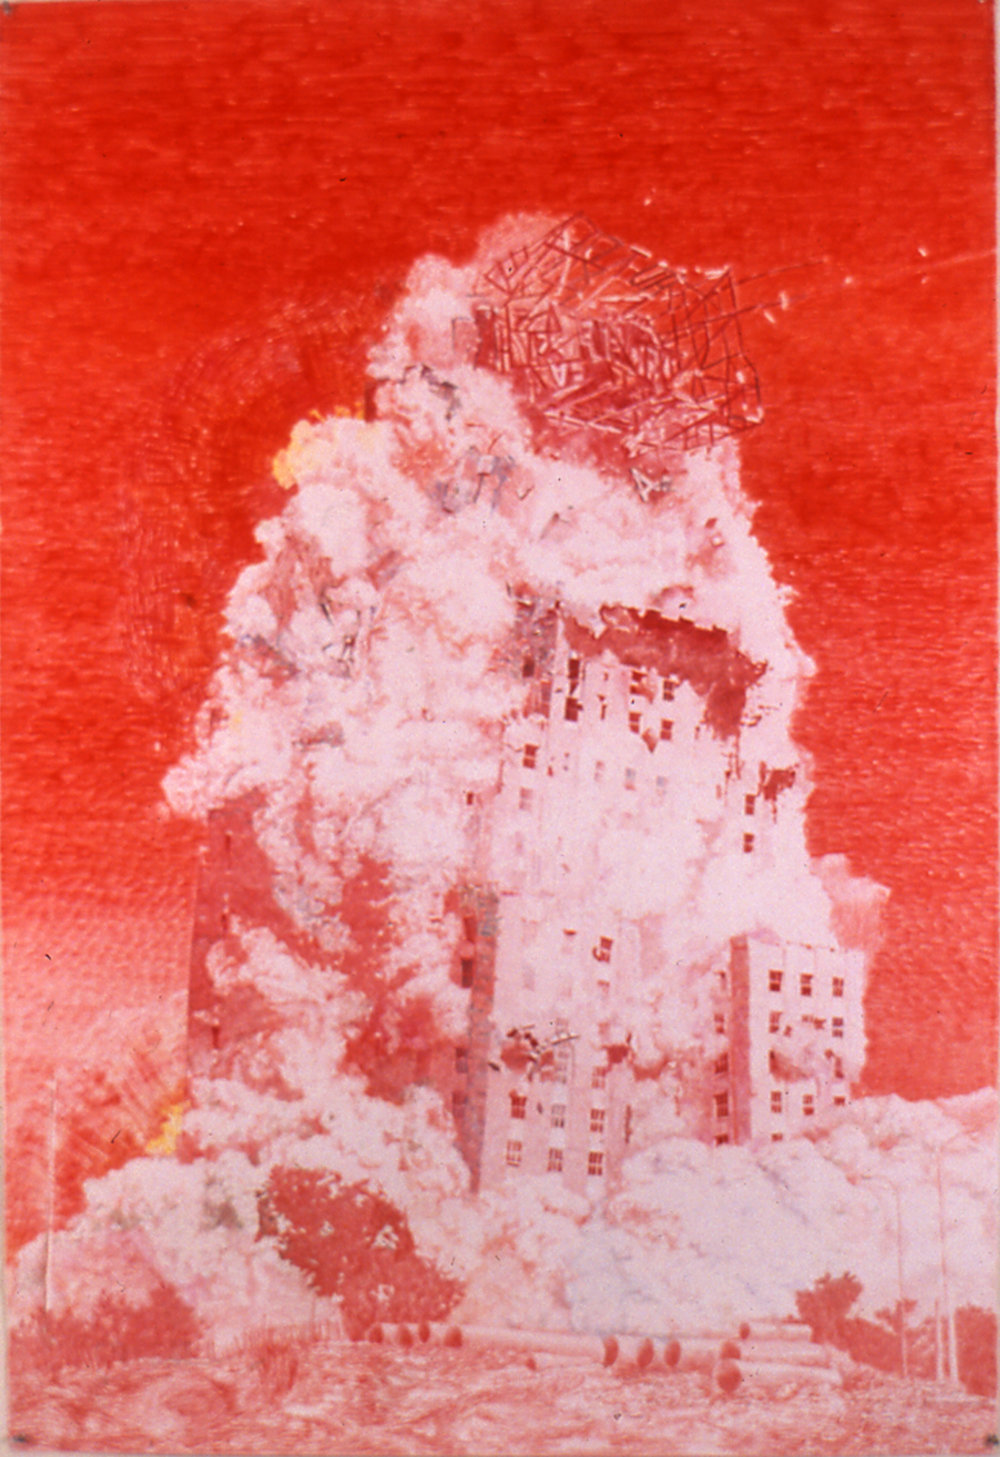 Red Demo, 2000, Colored pencil on paper, 60 x 41 inches, Private Collection